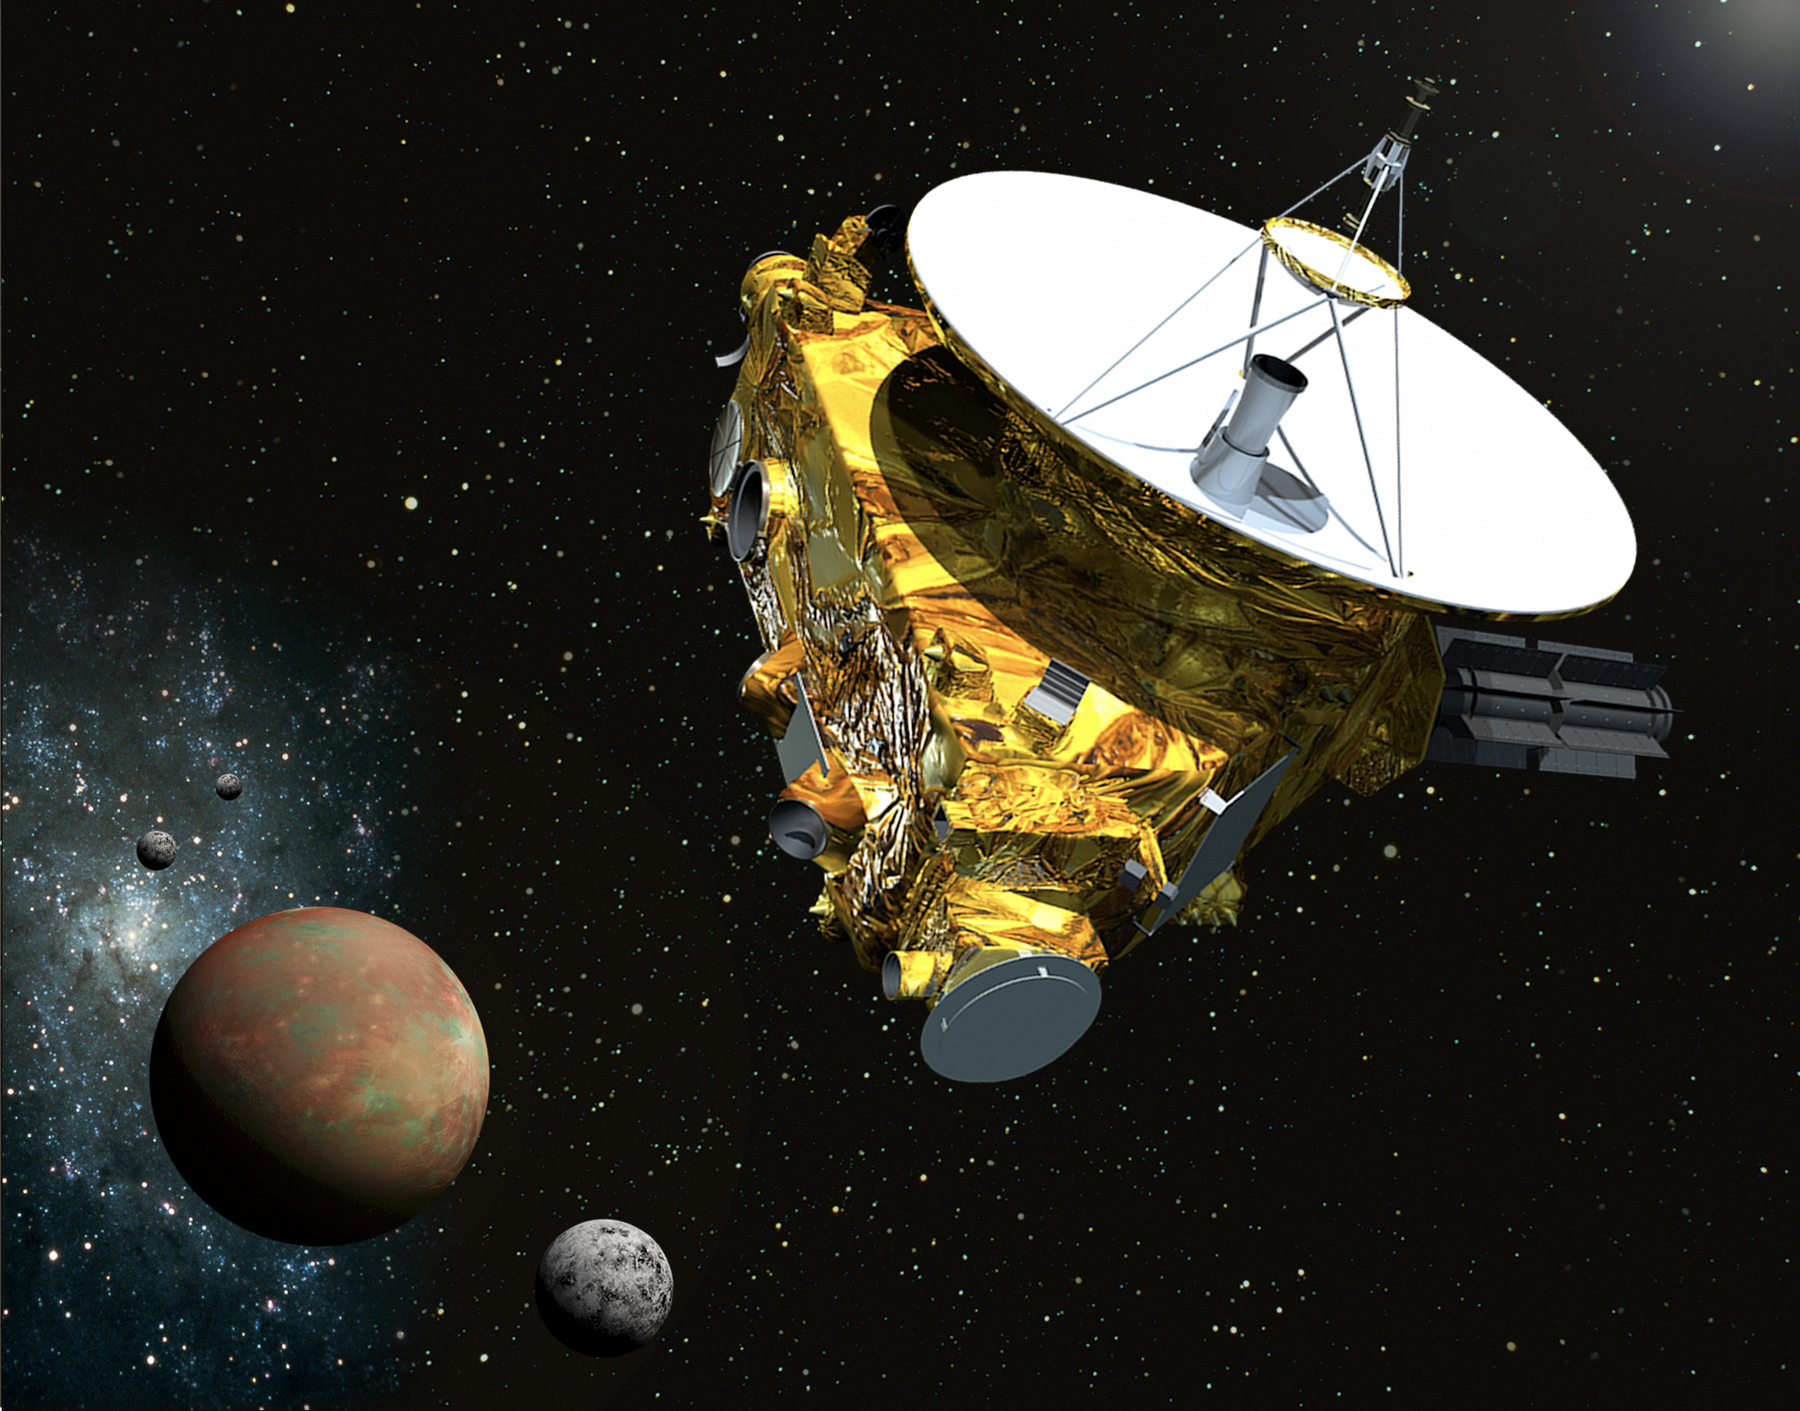 NASA Pluto Probe Begins Science Observations Ahead of Epic Flyby